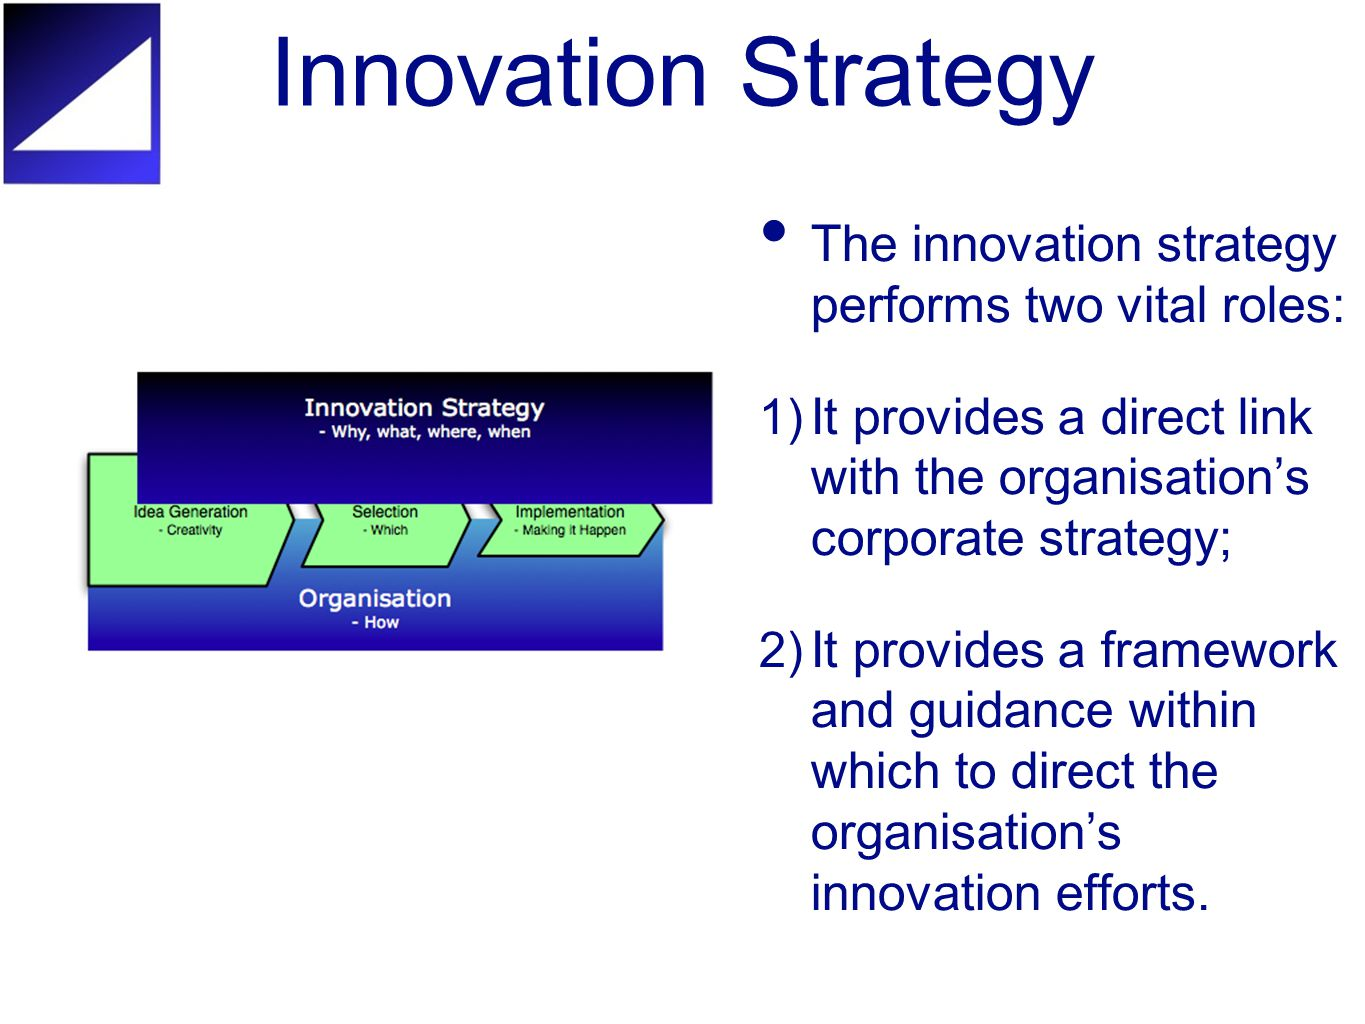 Innovation Strategy The innovation strategy performs two vital roles: 1) It provides a direct link with the organisation's corporate strategy; 2) It provides a framework and guidance within which to direct the organisation's innovation efforts.